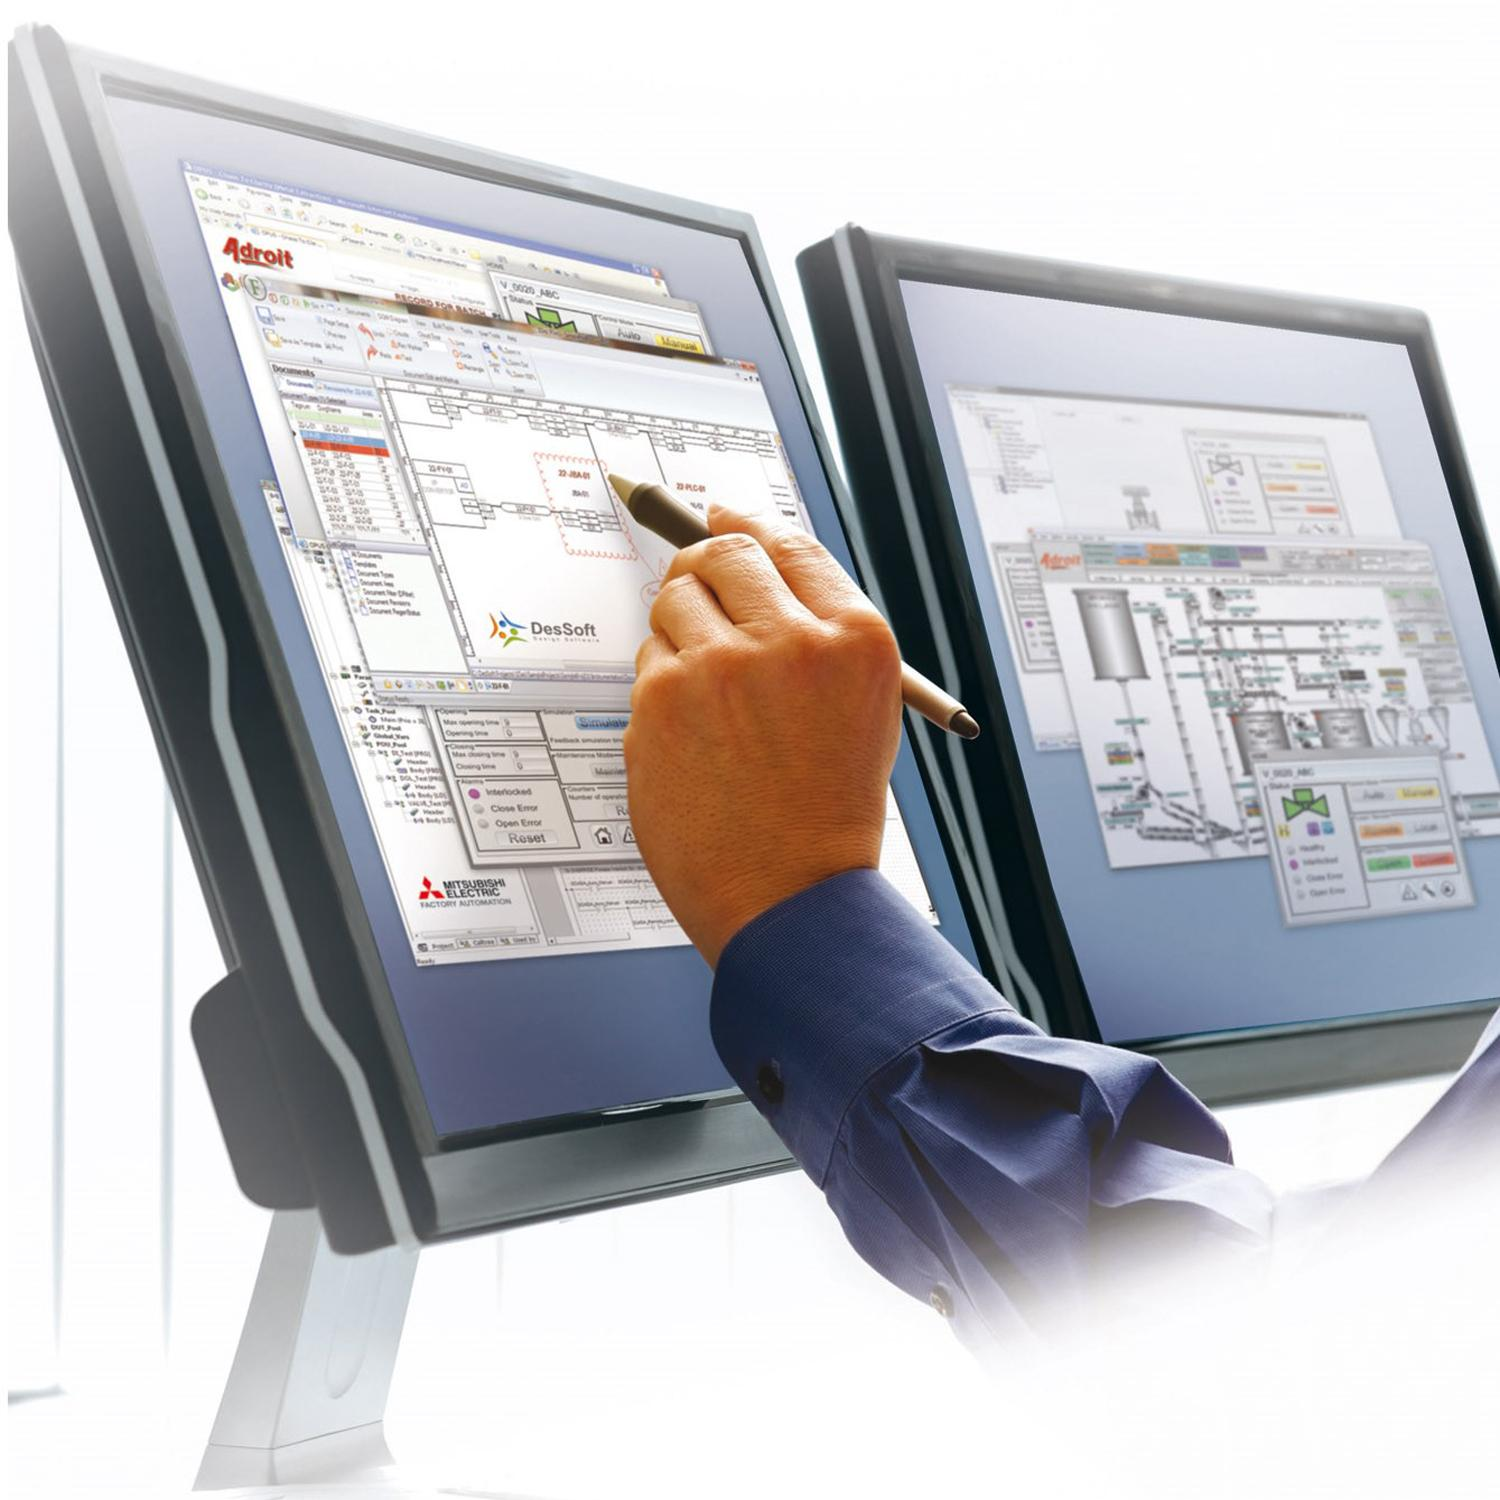 Mitsubishi Electric's M2M communication solution's intelligence lies in the standard integrated PLC function blocks matched to an M2M driver in the MAPS SCADA